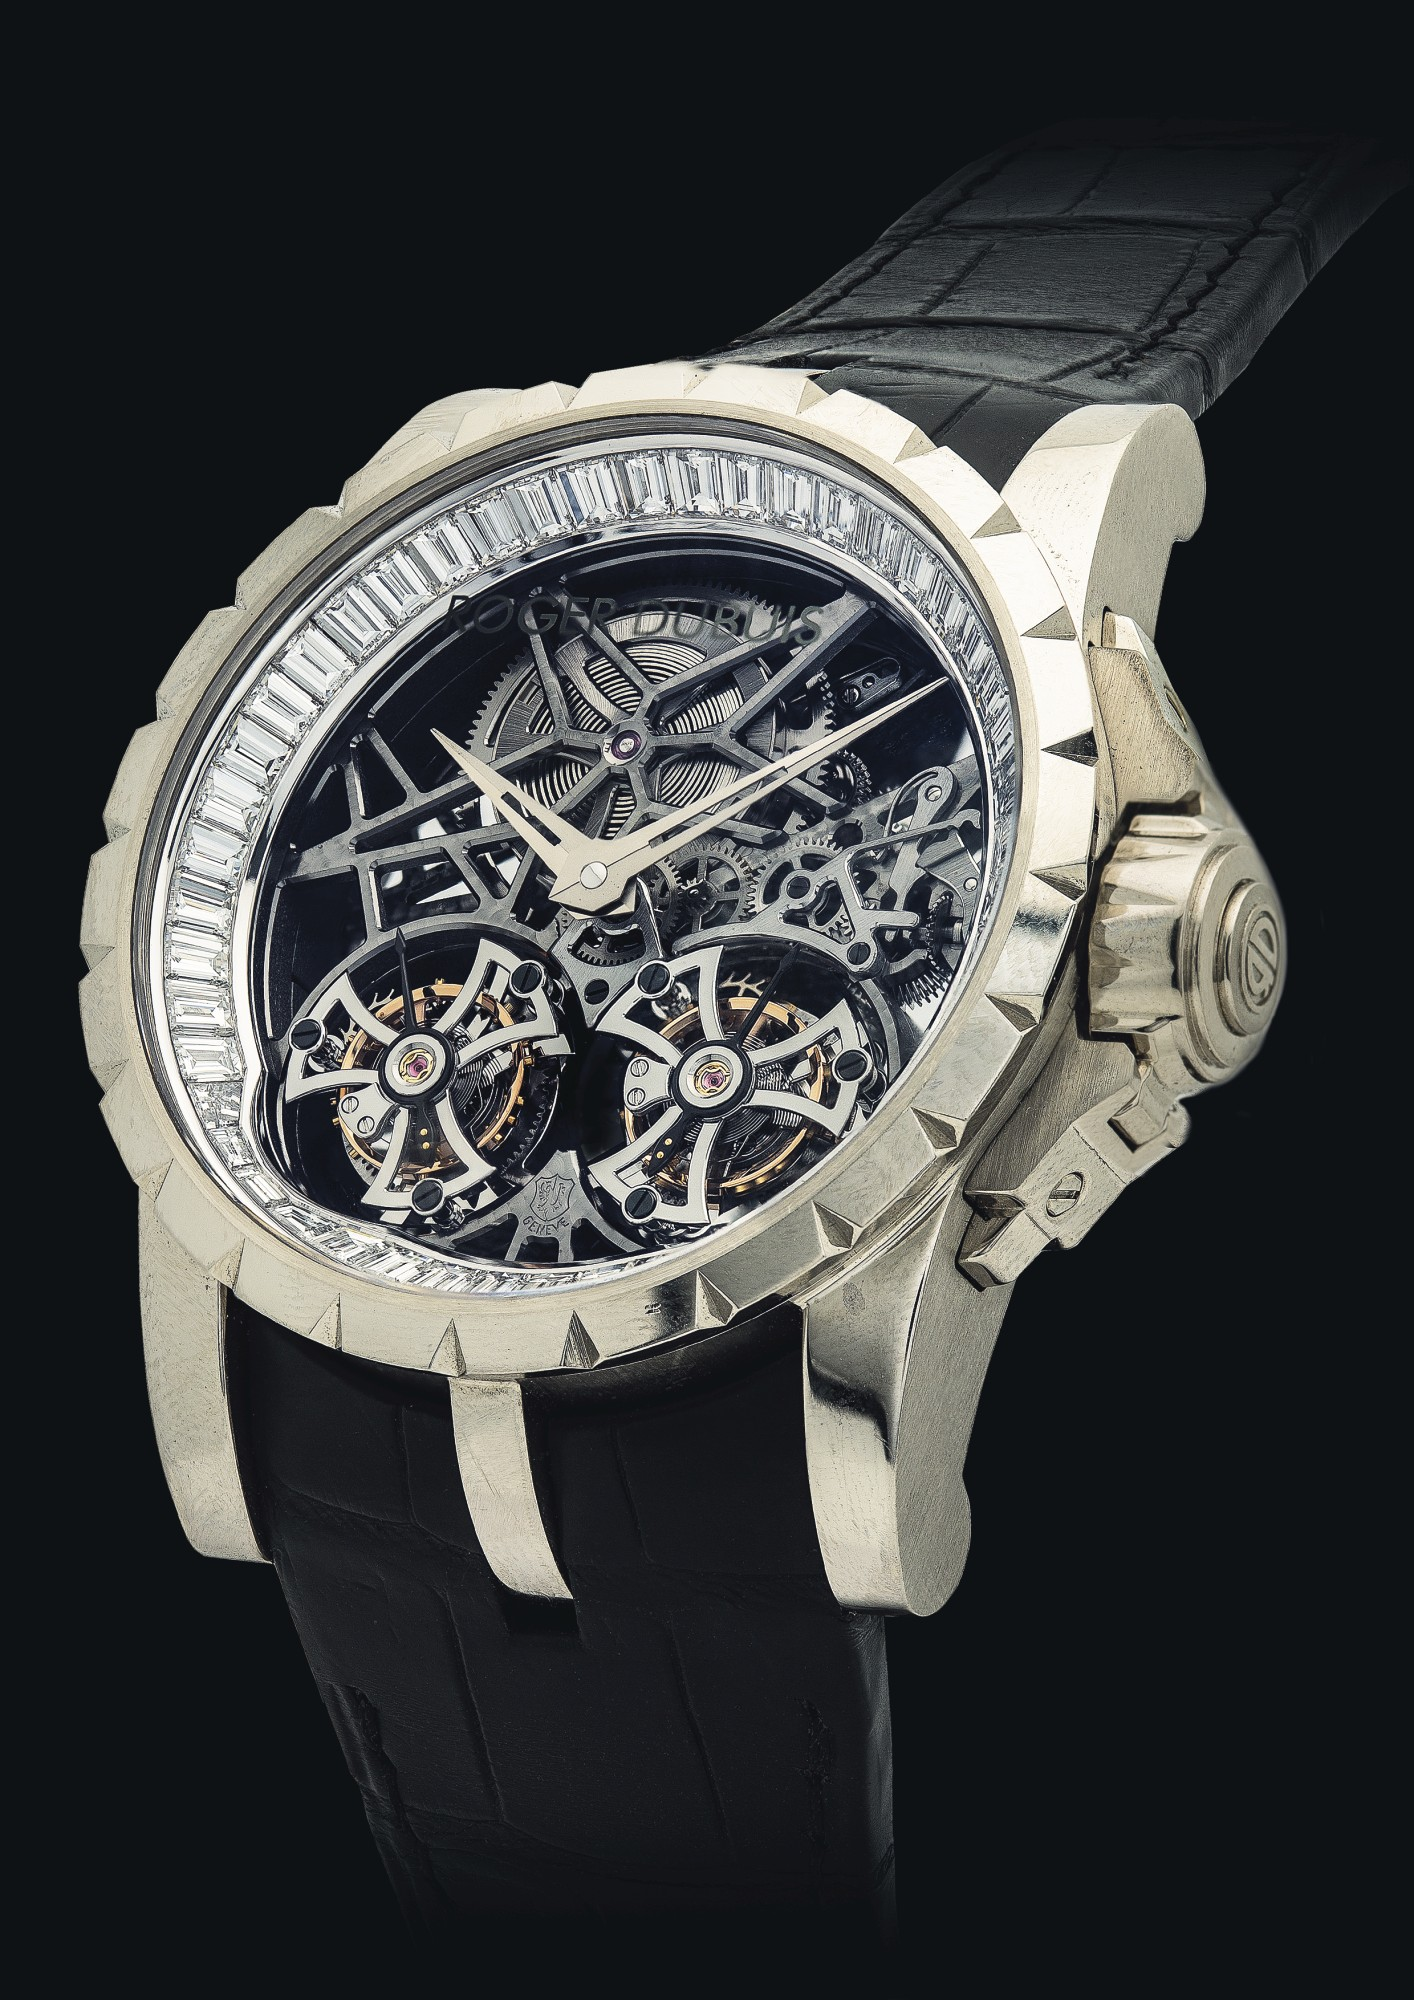 ROGER_DUBUIS-18K_WHITE_GOLD_AND_DIAMOND-SET_LIMITED_EDITION_SKELETONIZED_DOUBLE_TOURBILLON_lr